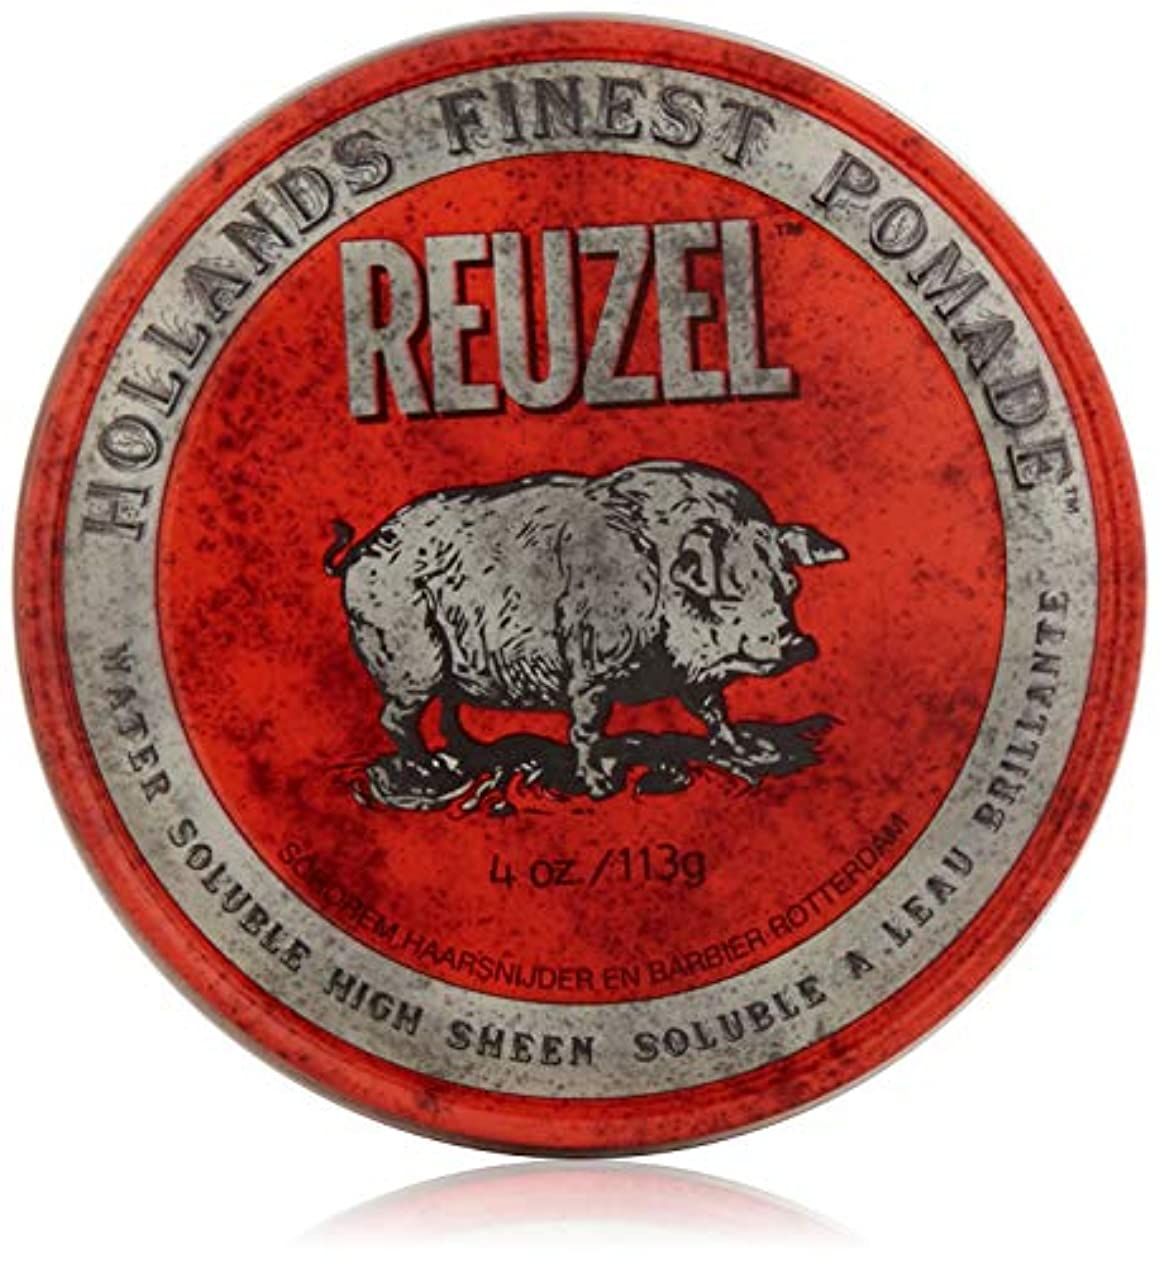 良性不名誉な移動Red Hair Pomade 4oz pomade by Reuzel by REUZEL